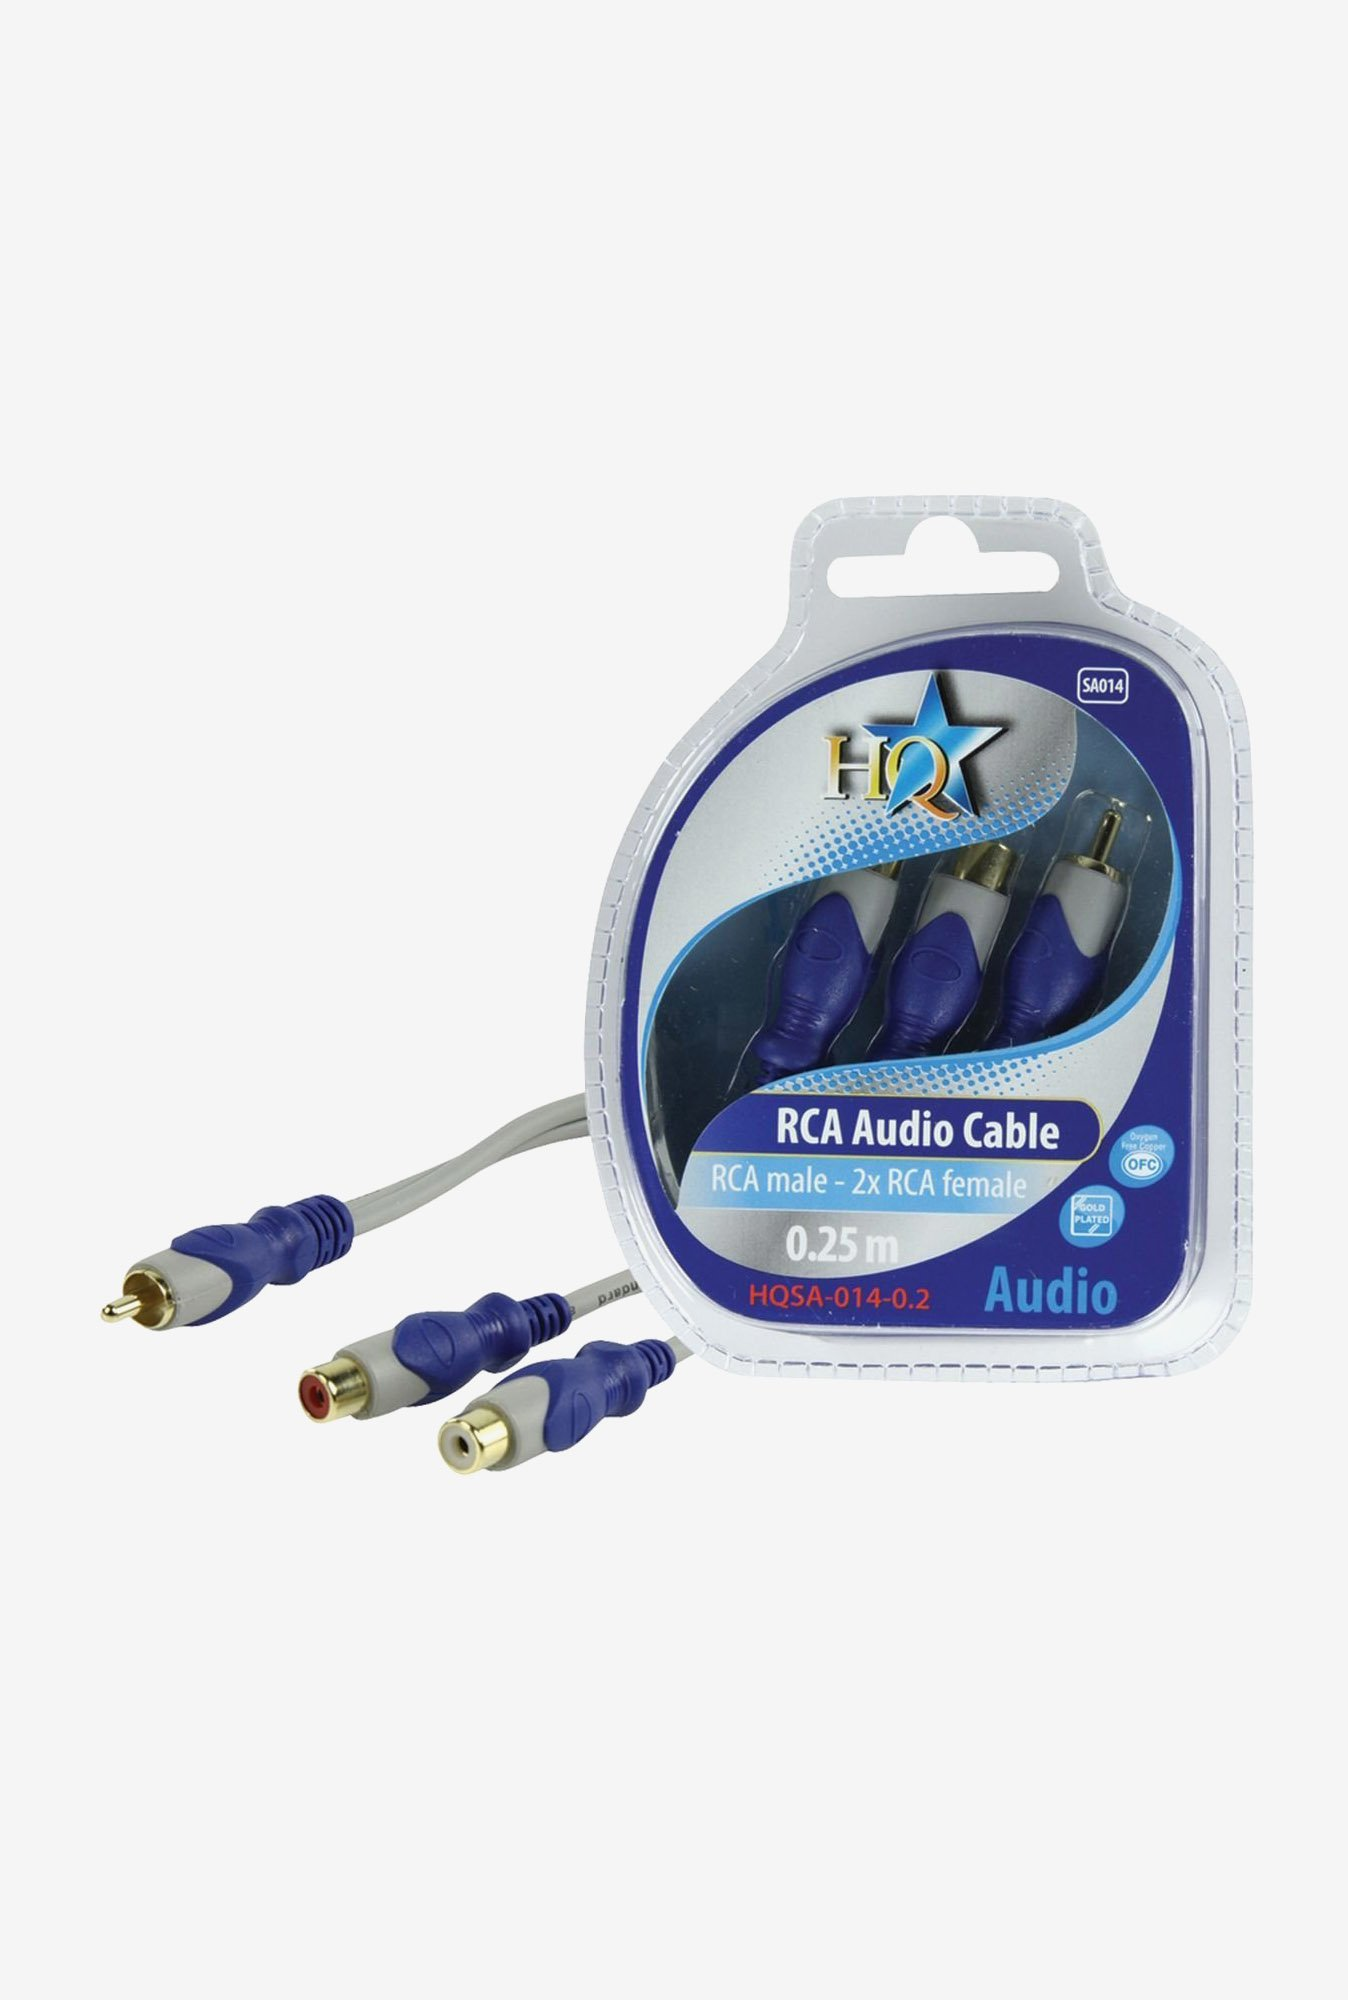 HQ HQSA014-0.2 Cable Blue